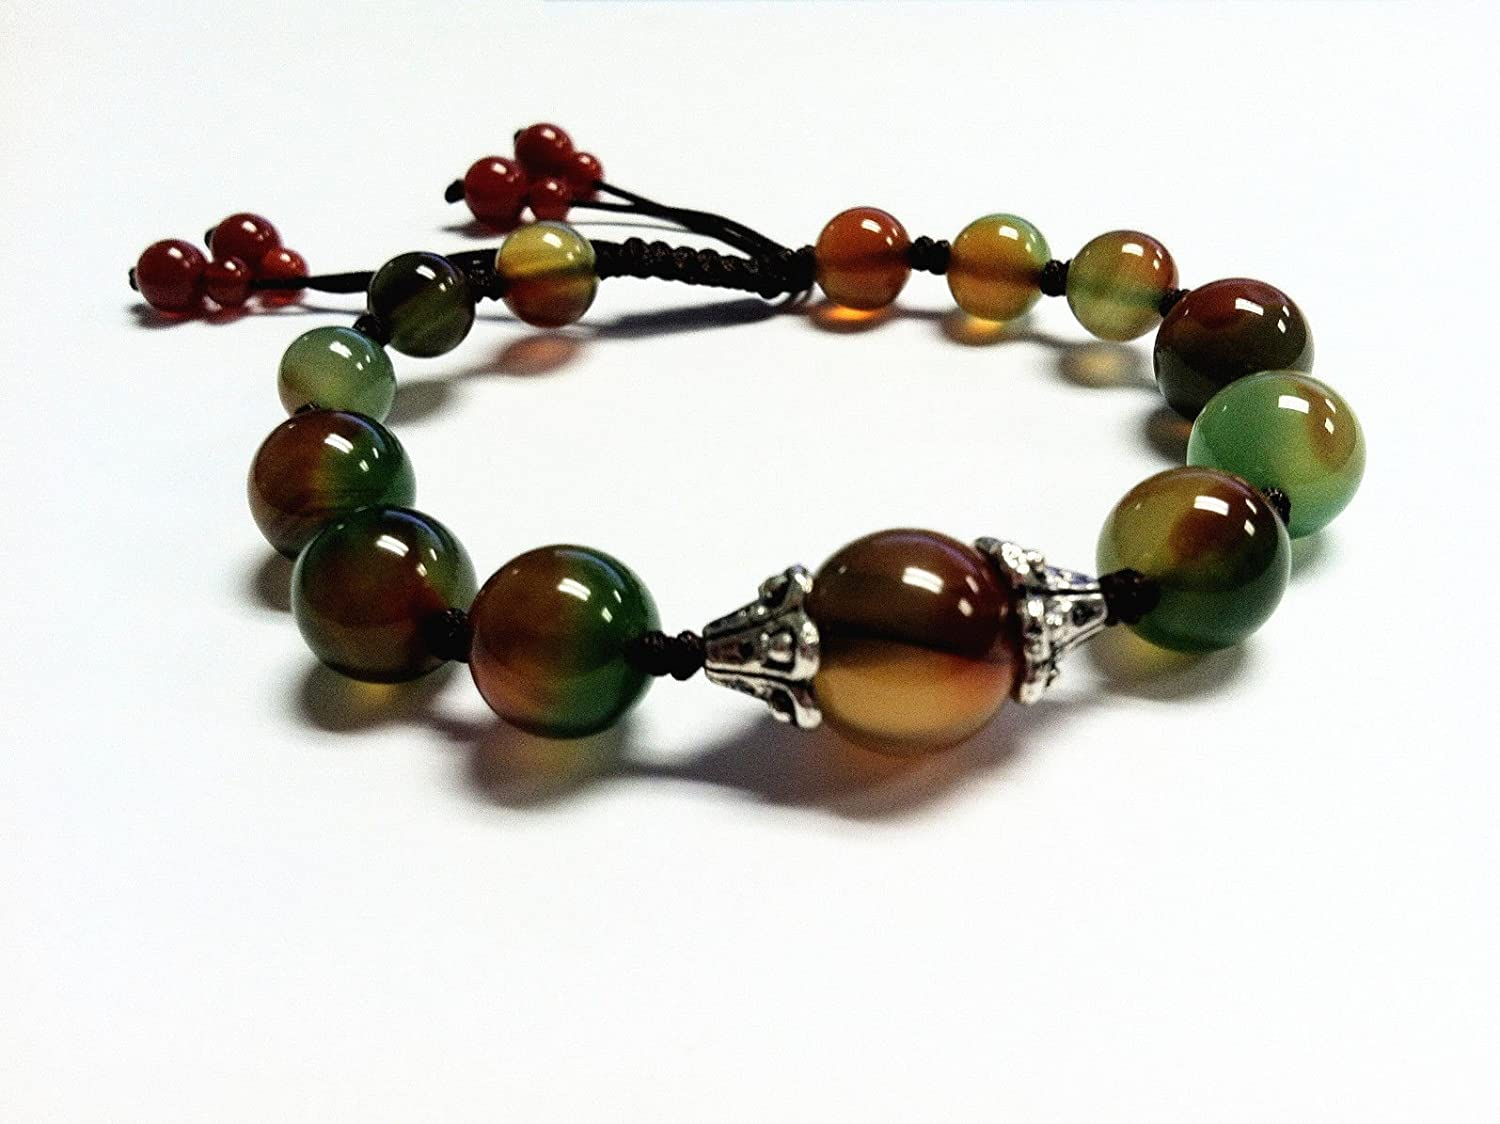 Beautiful Handmade Peacock Agate Beads Bracelet for Protection, Strength and Harmony (with Betterdecor pouch)